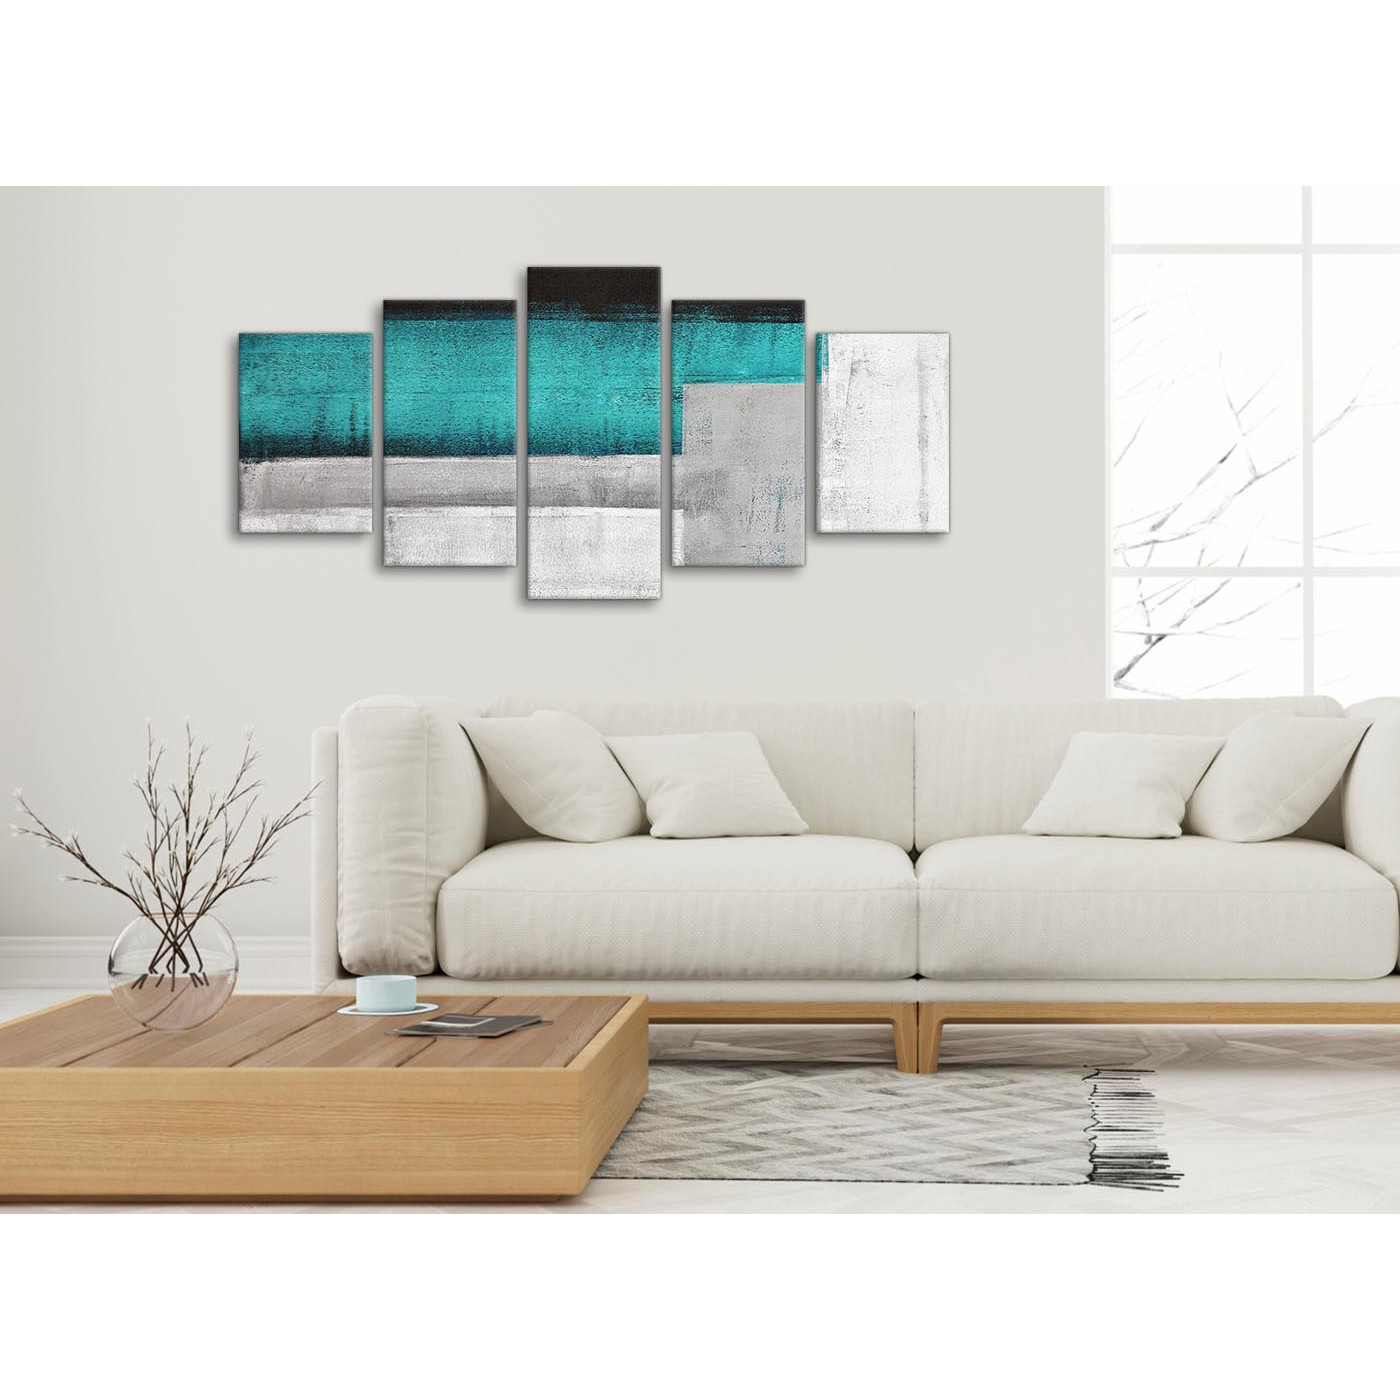 5 Panel Teal Turquoise Grey Painting Abstract Office Canvas Wall Art ...